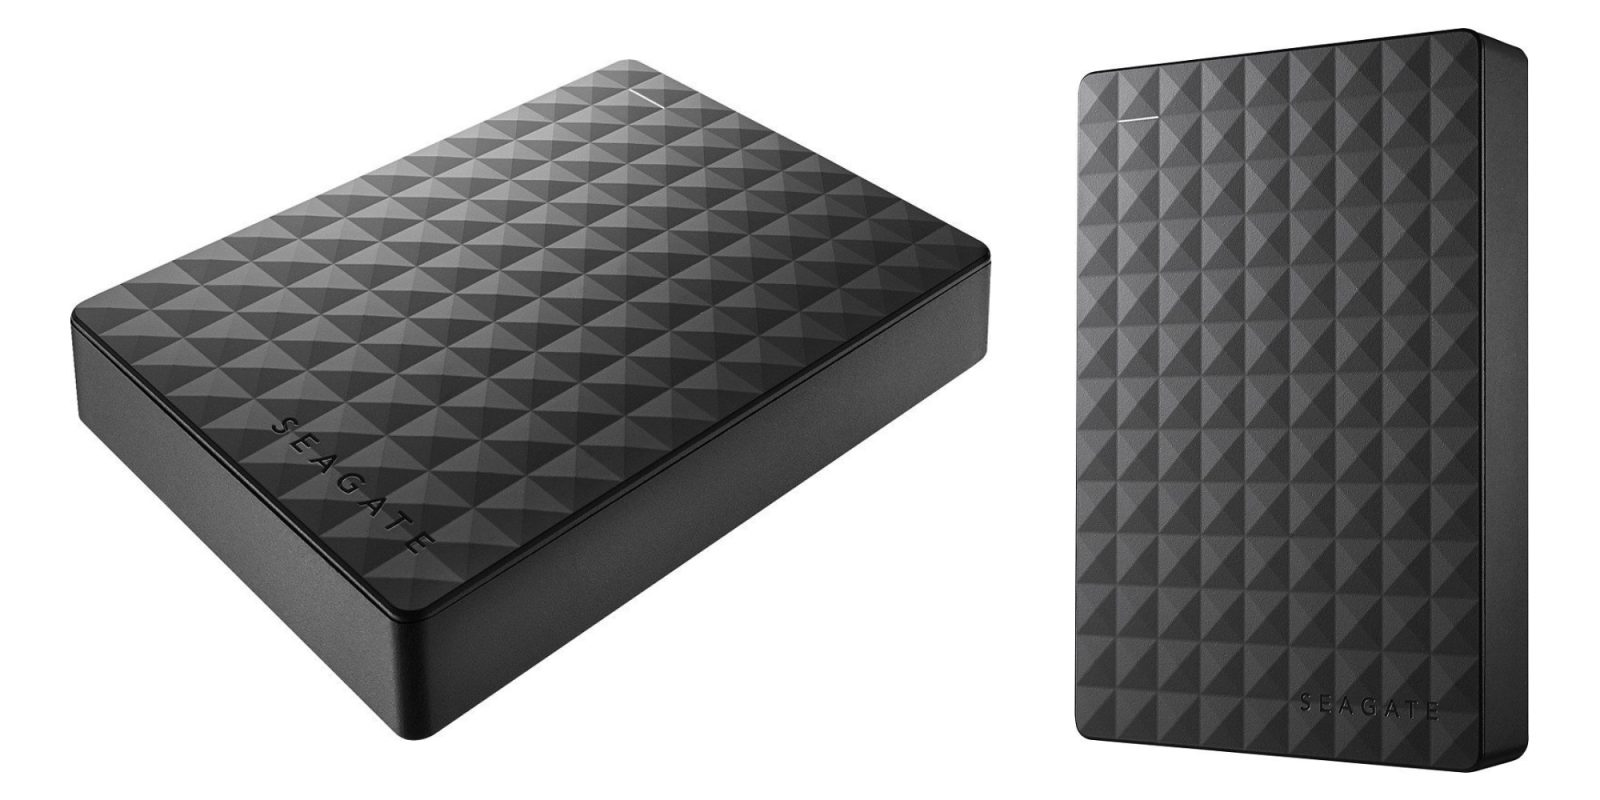 Seagate 2TB Portable Hard Drive is $55 at Amazon (Reg. up to $70)